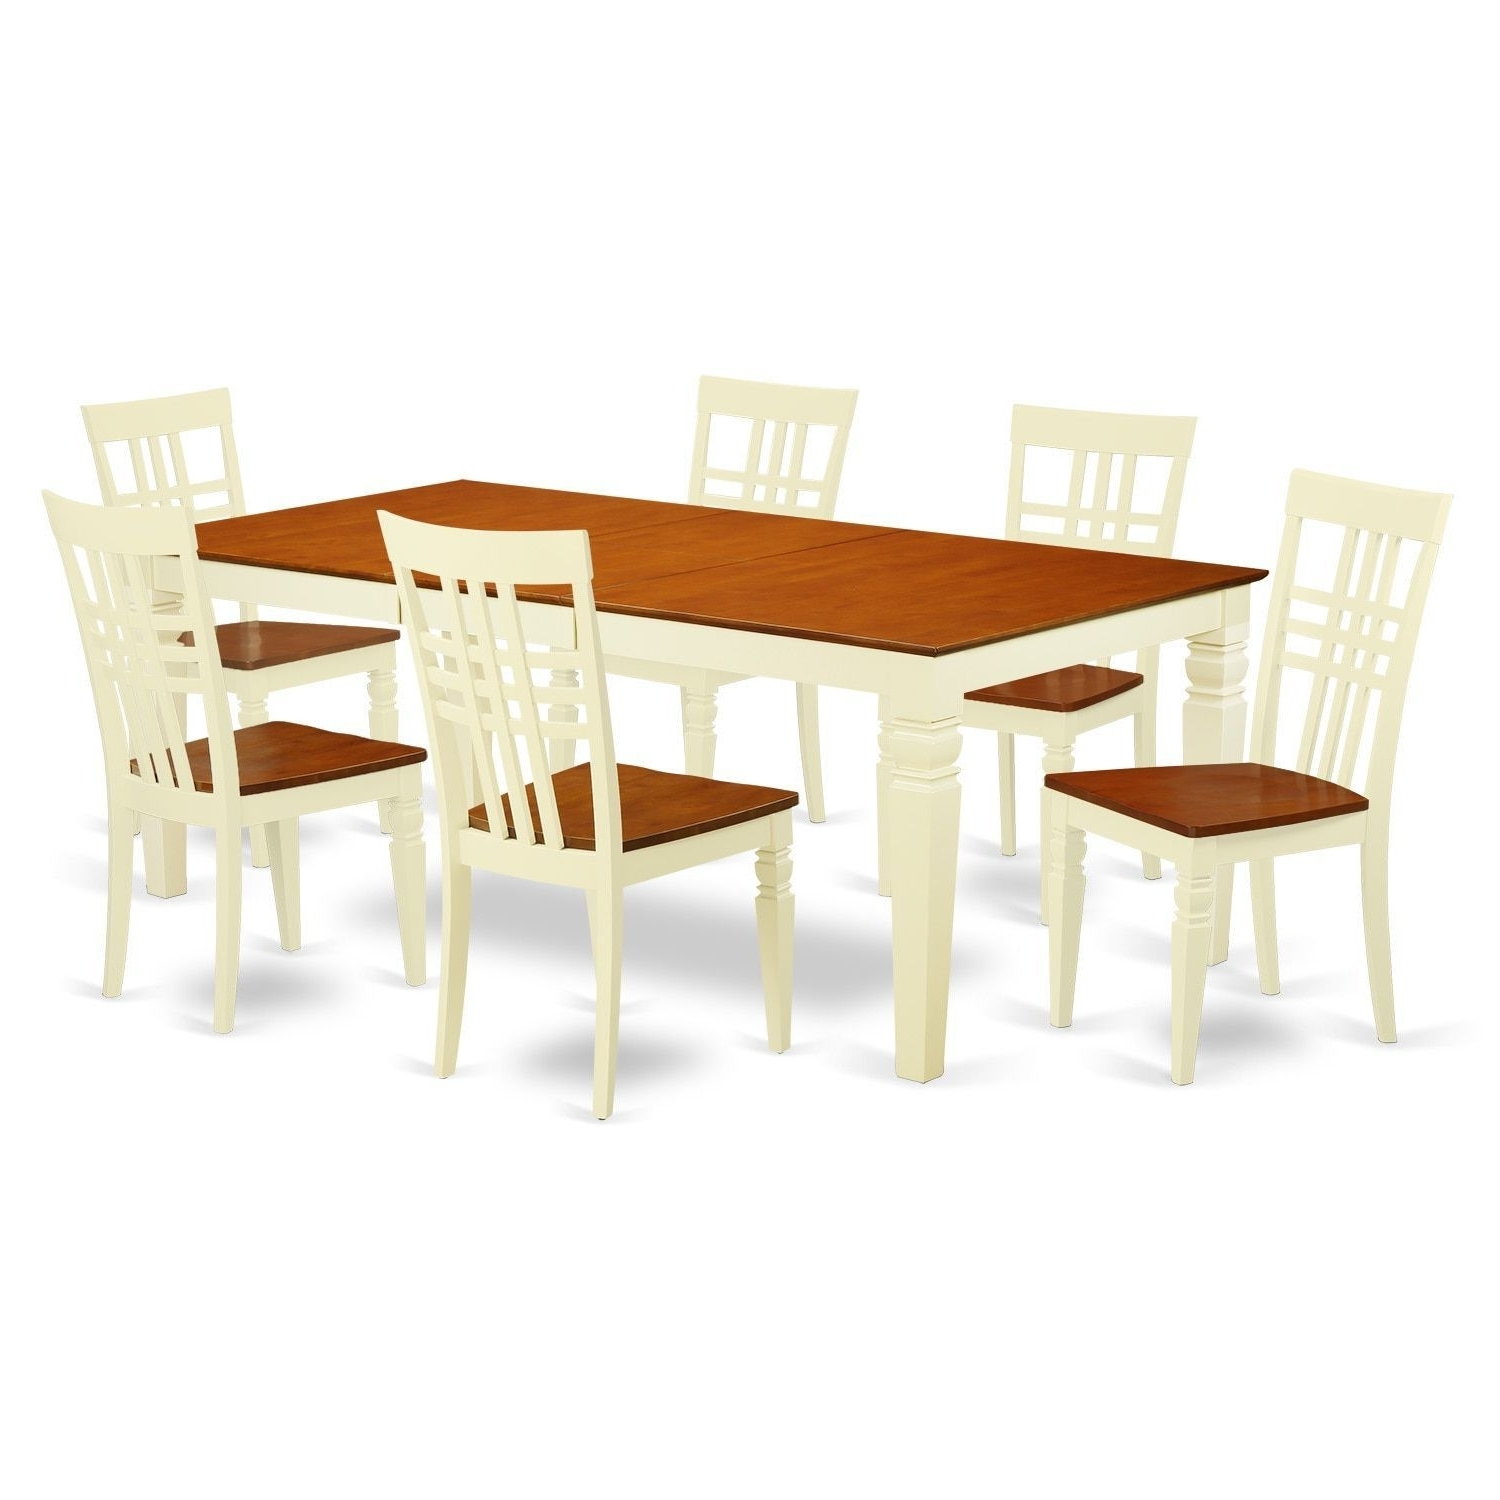 Logan 7 Piece Dining Sets Within 2017 Logan Wood Extendable Dining Table And 6 Chairs Set (Buttermilk (View 14 of 25)